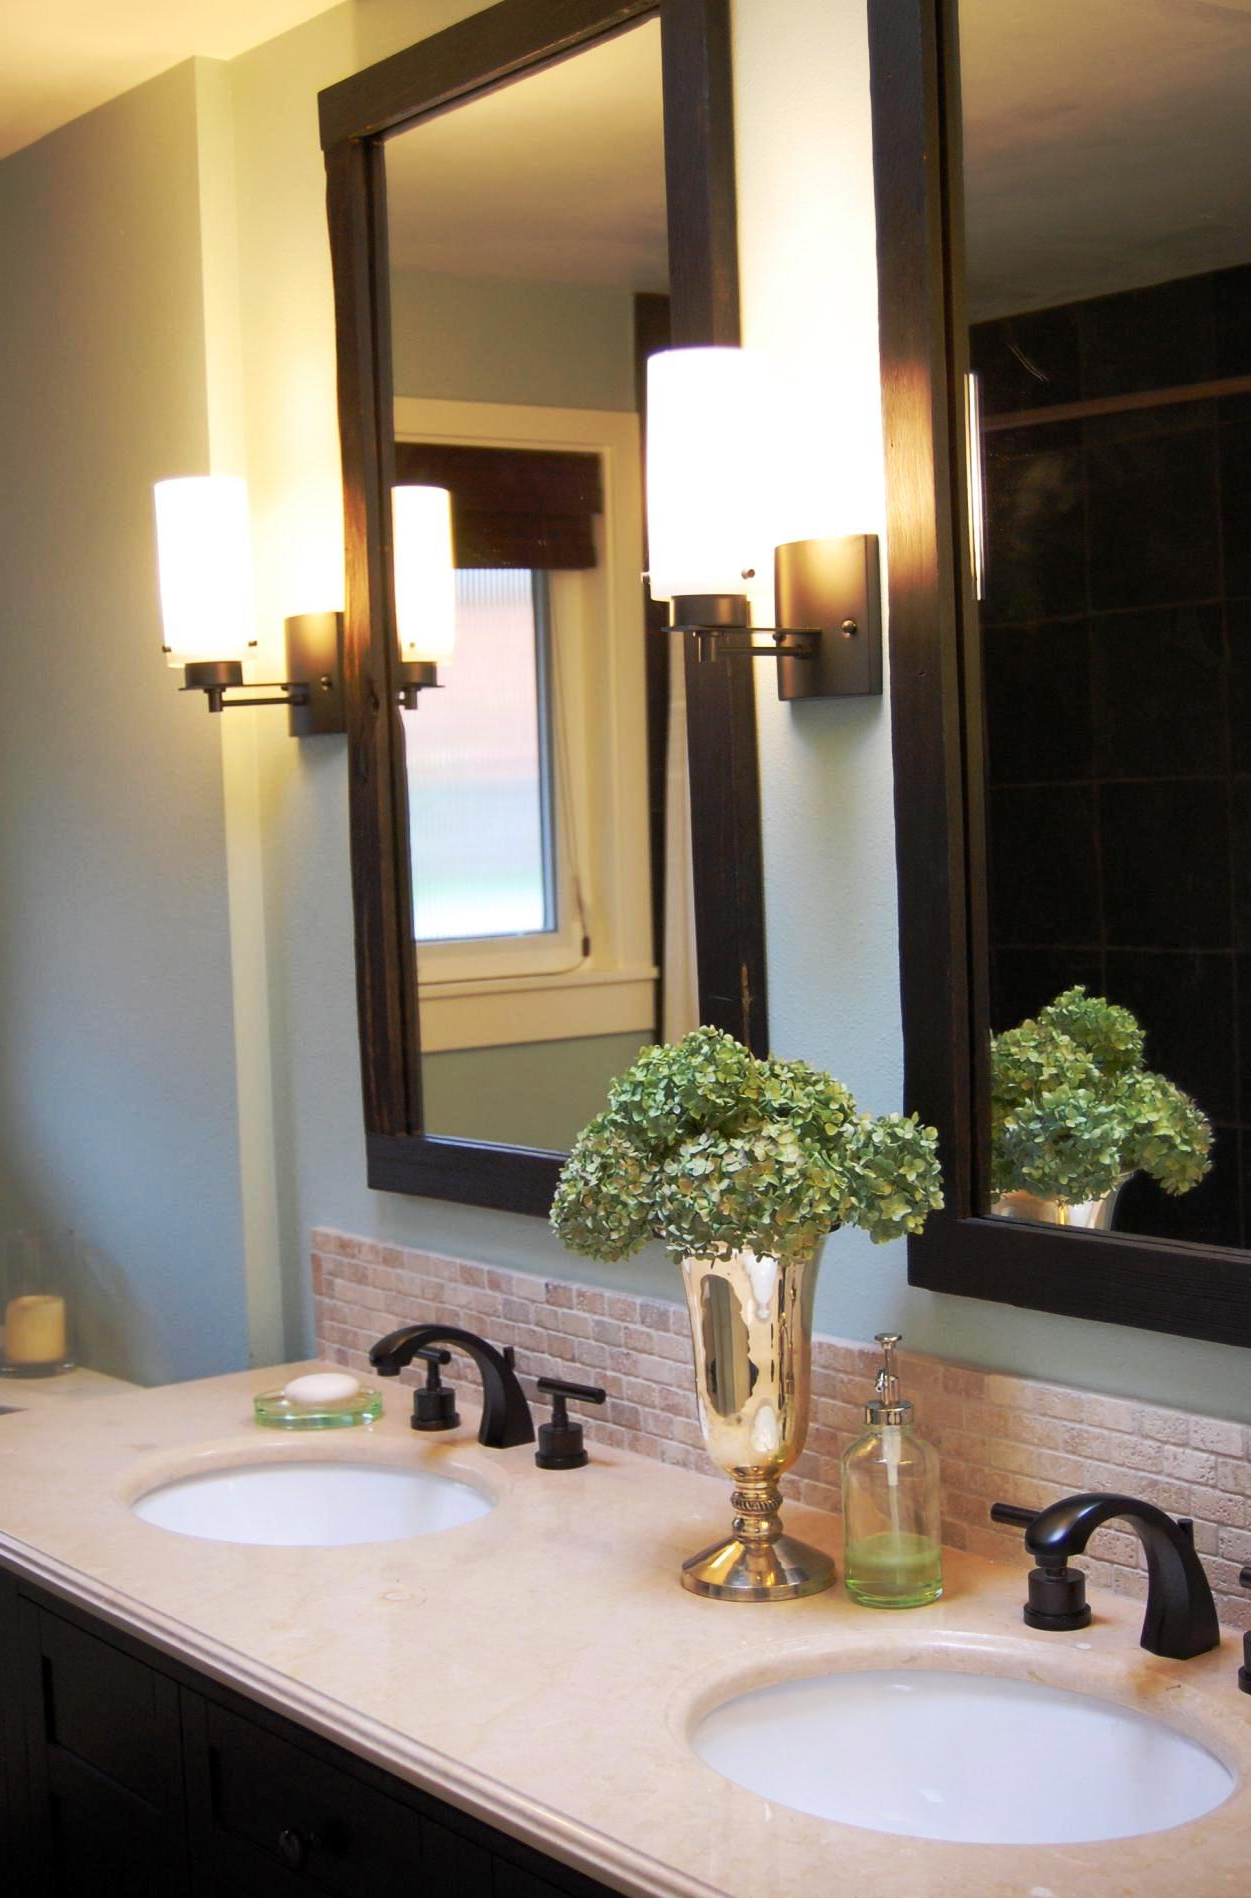 Frame Bathroom Wall Mirrors Throughout Favorite Frame Bathroom Wall Mirror To Show Beautiful Accent In (View 17 of 20)